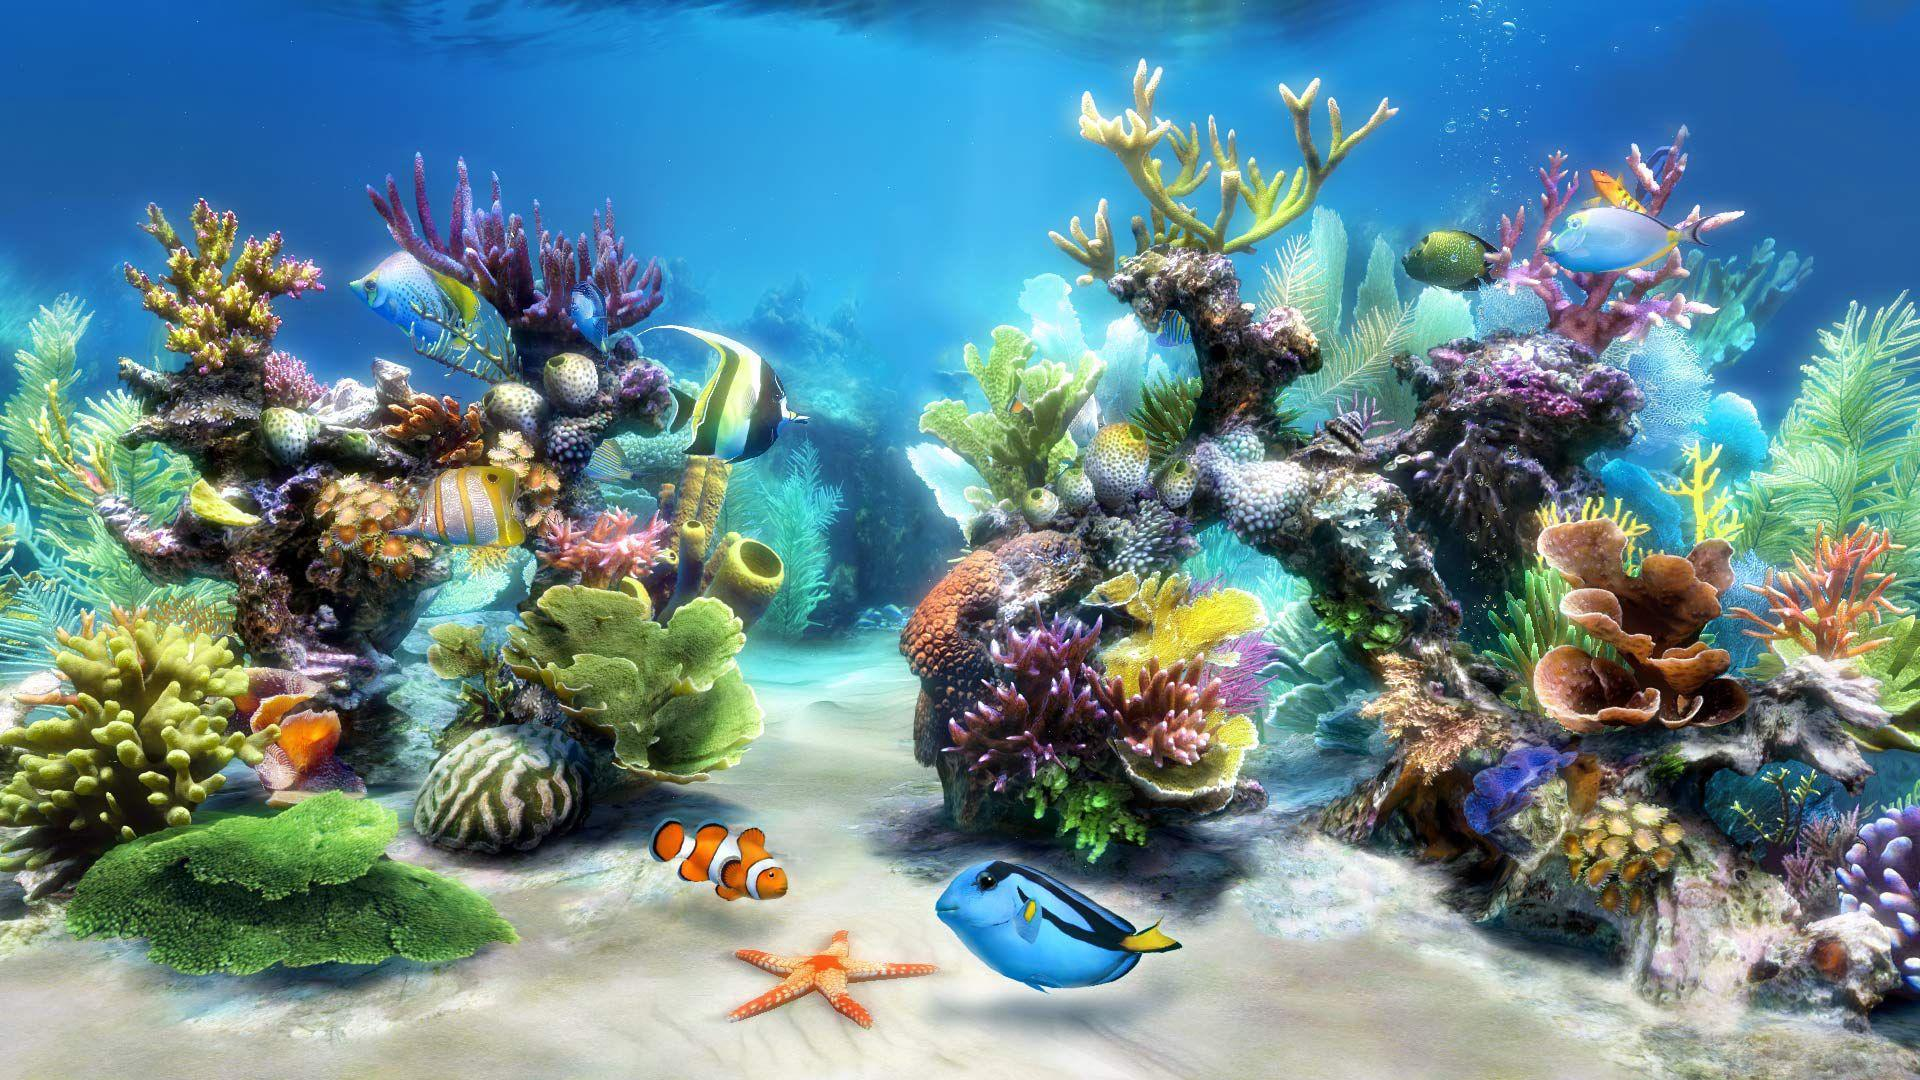 Aquarium Wallpaper Backgrounds